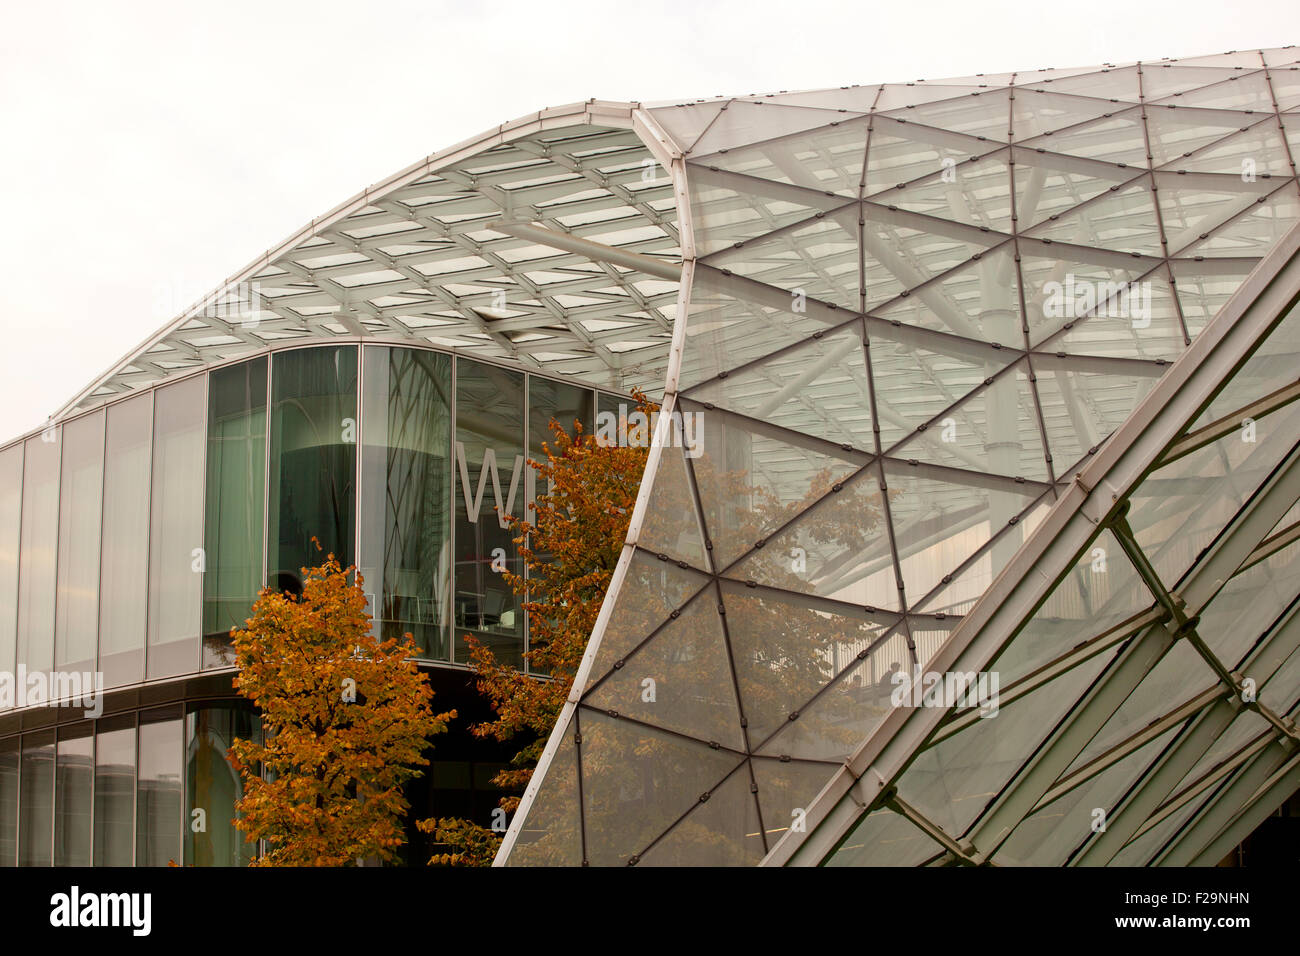 Metal and glass canopy, Fiera di Milano - Stock Image